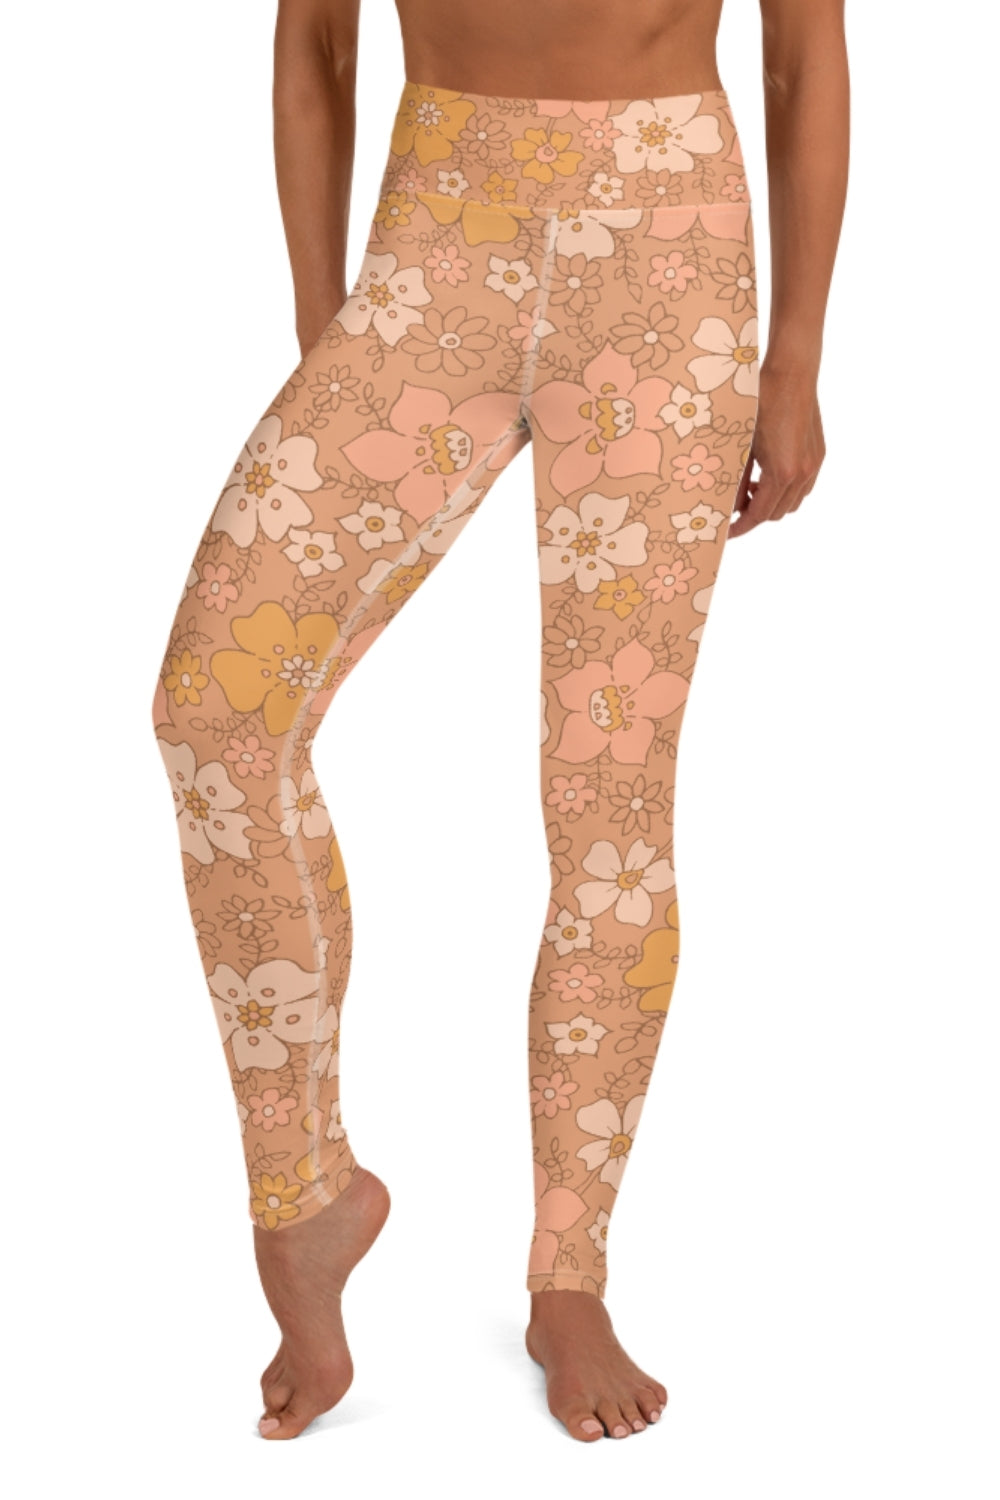 Peachy Keen Yoga Leggings